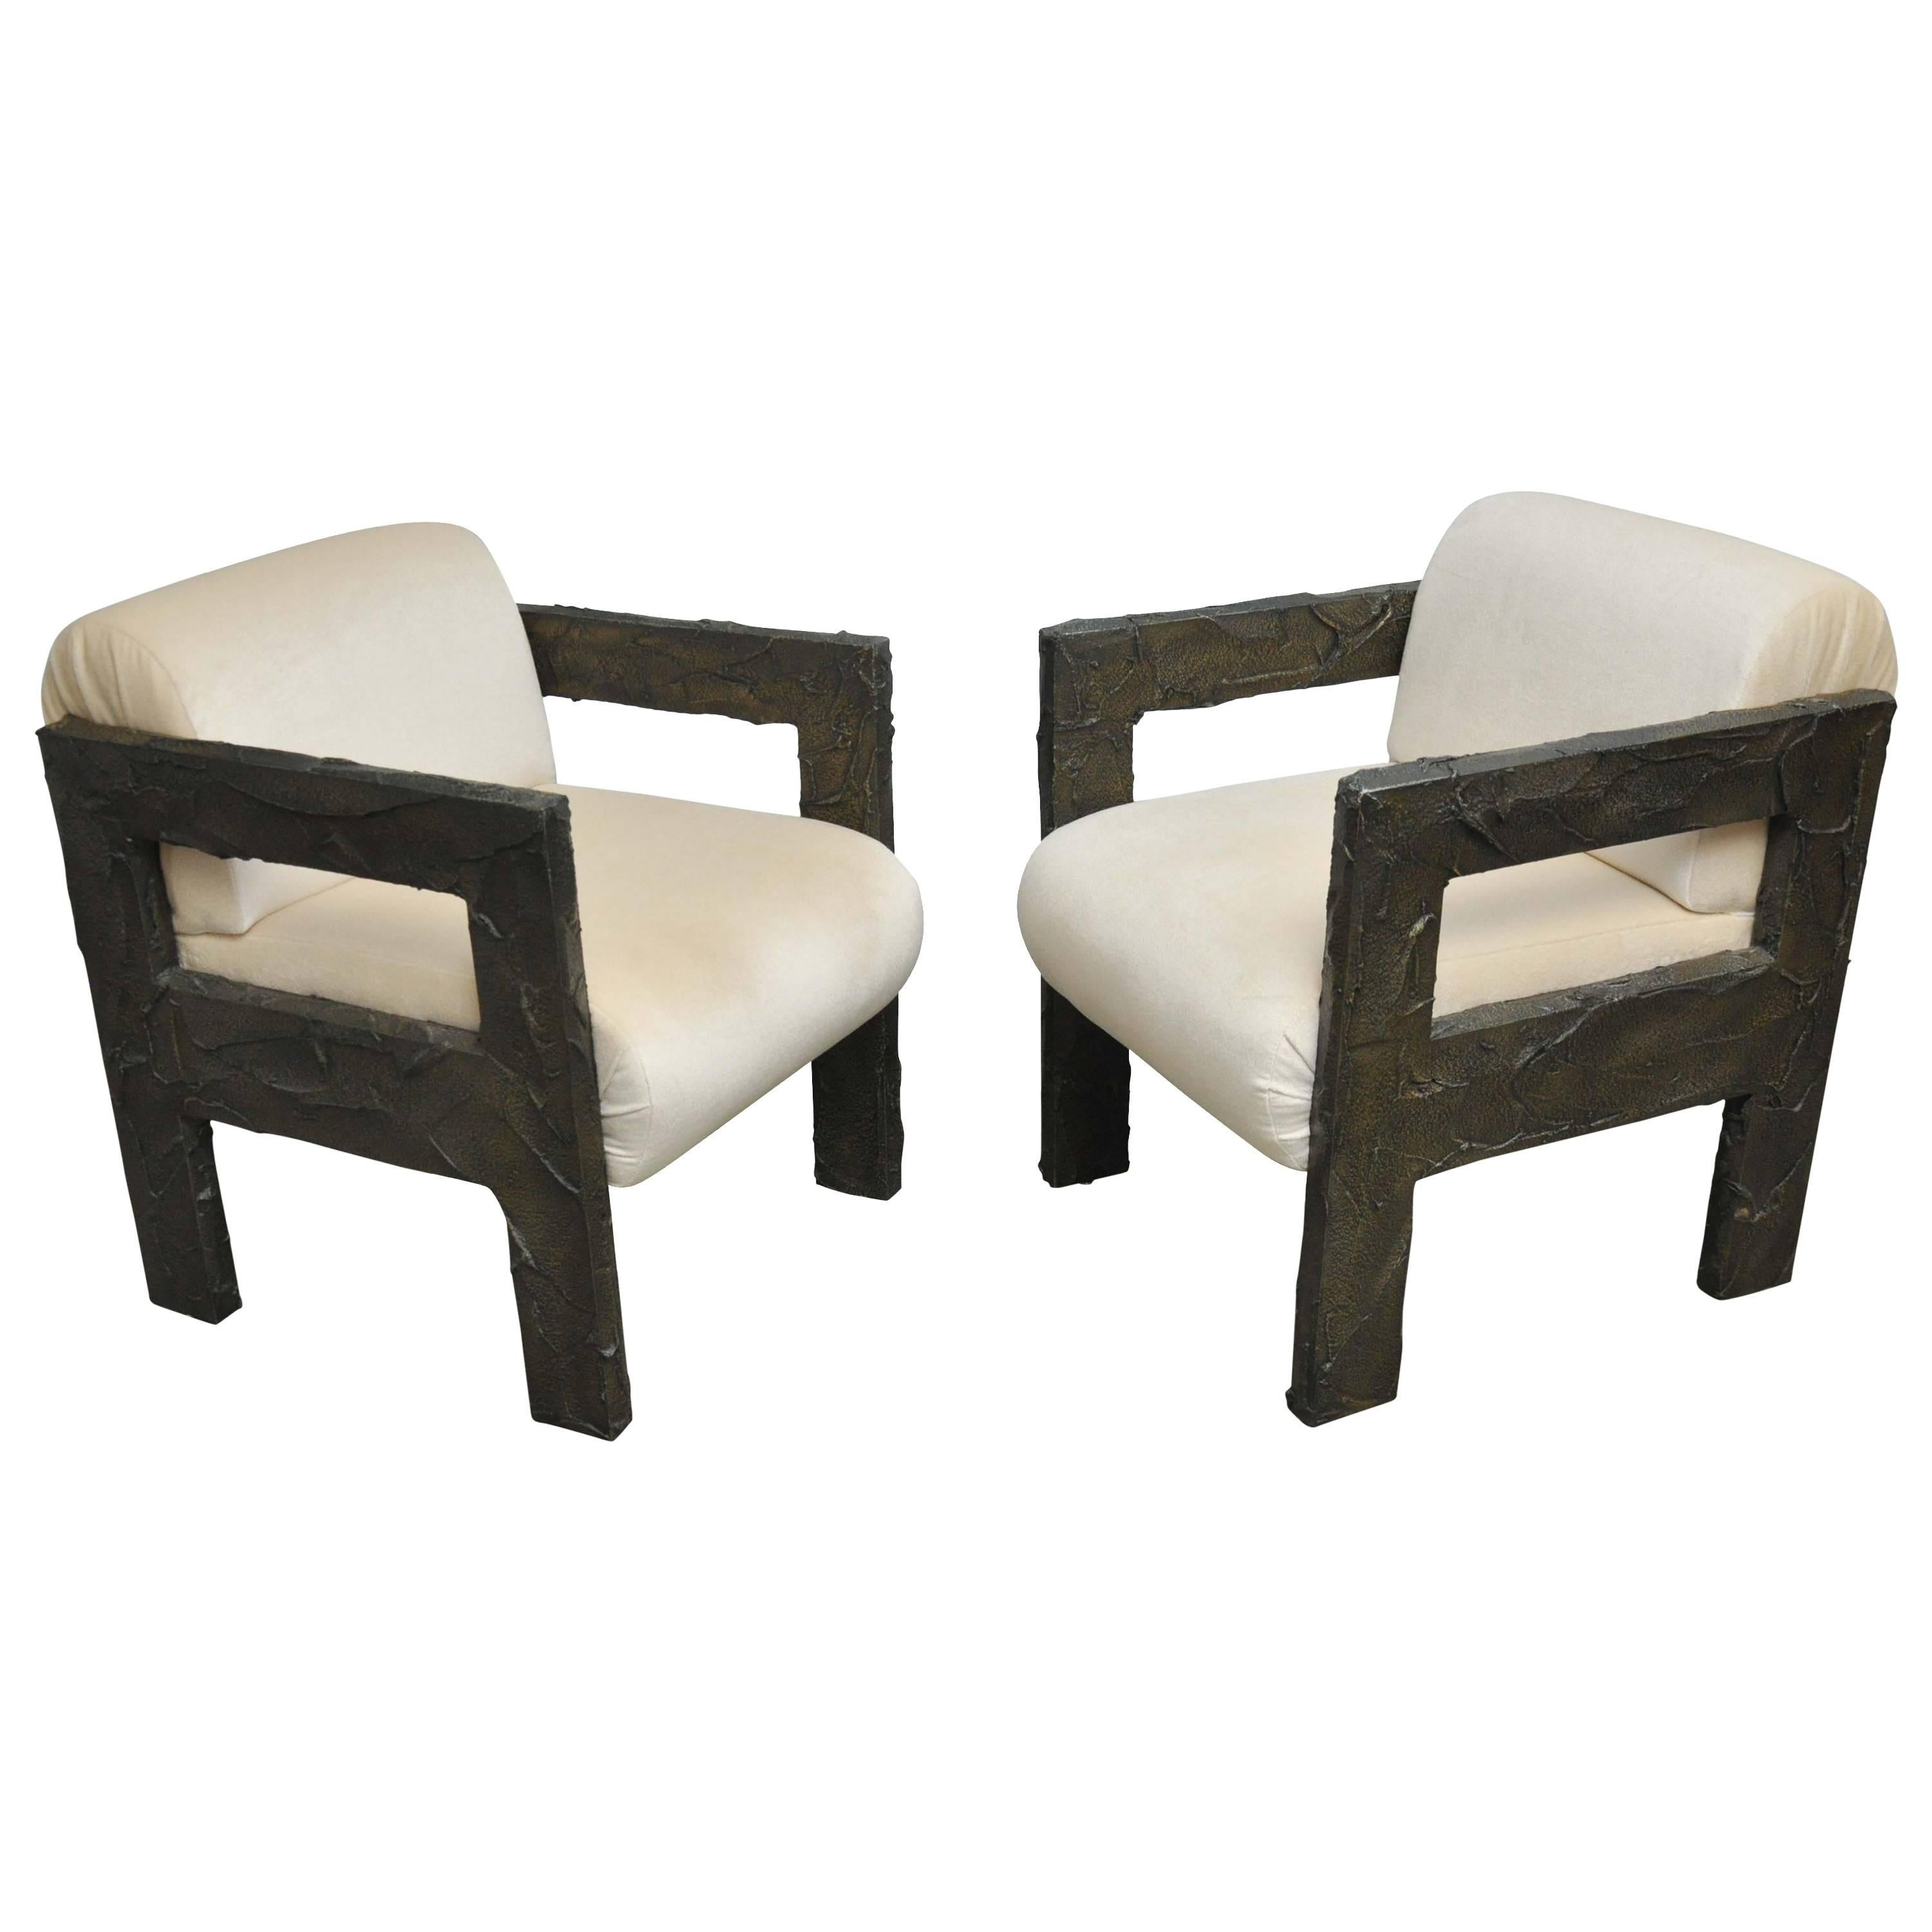 Rare Lounge Chairs By Paul Evans, Circa 1968. Sculpted Bronze Frames With  New Mohair